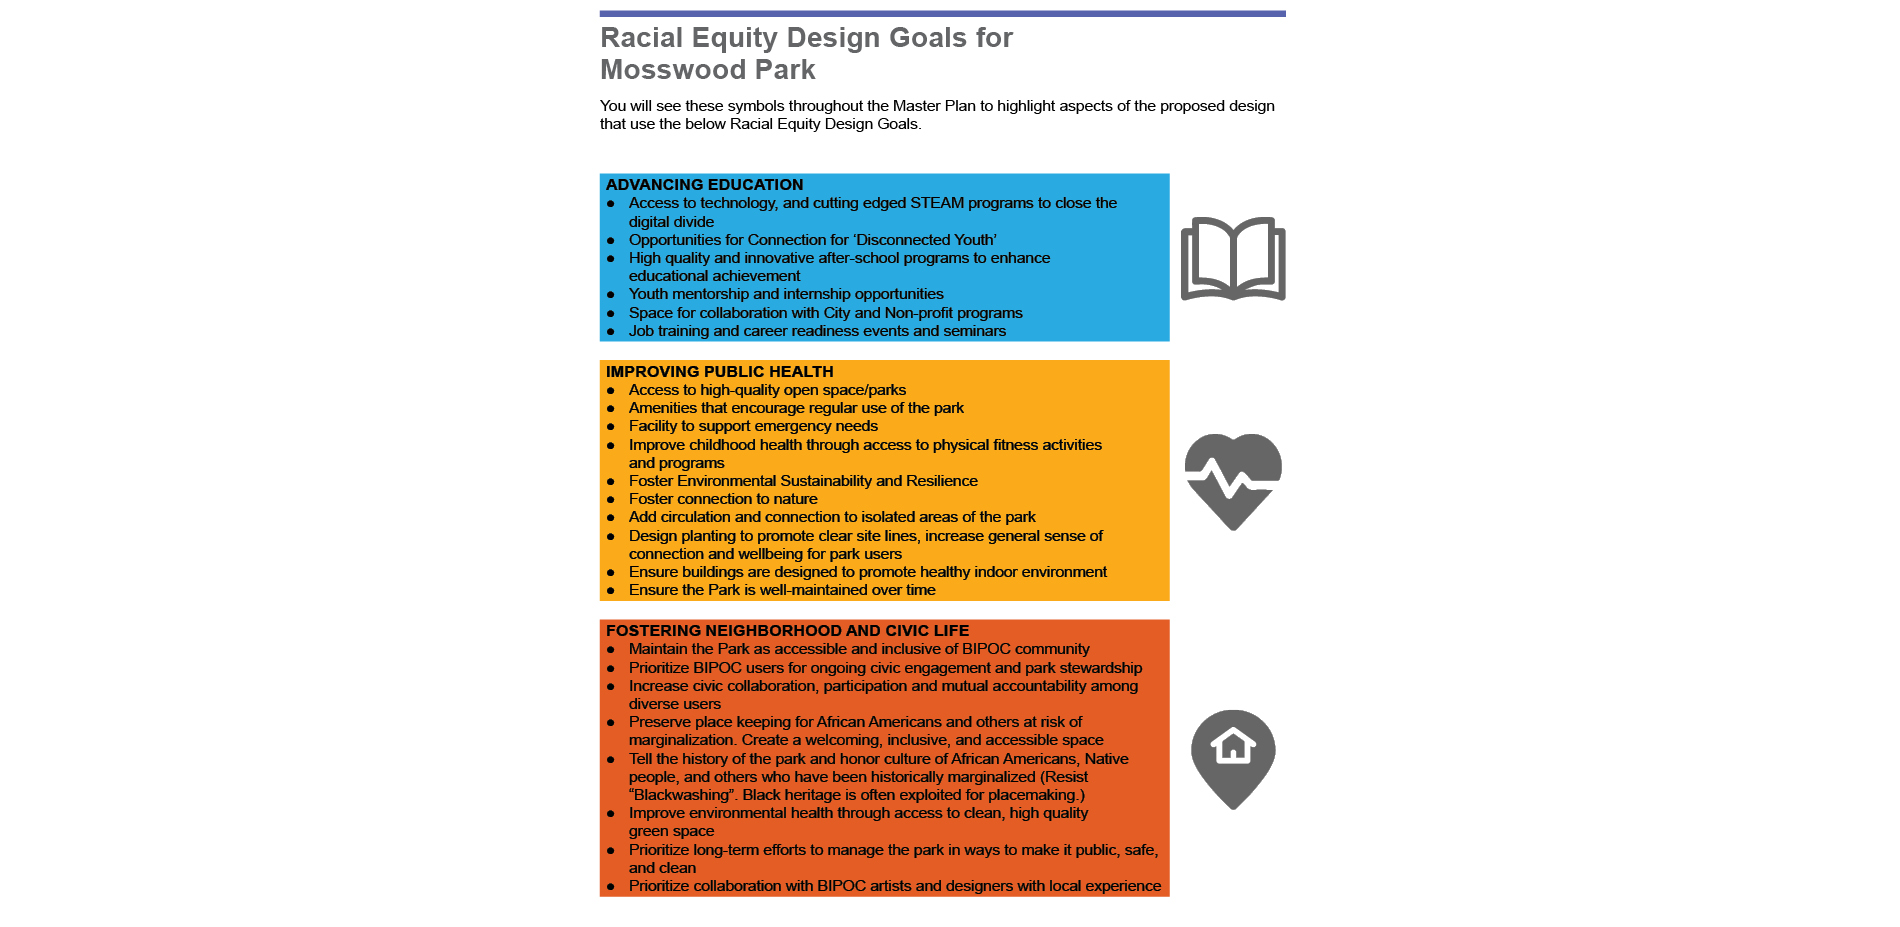 Race and Equity Guidelines